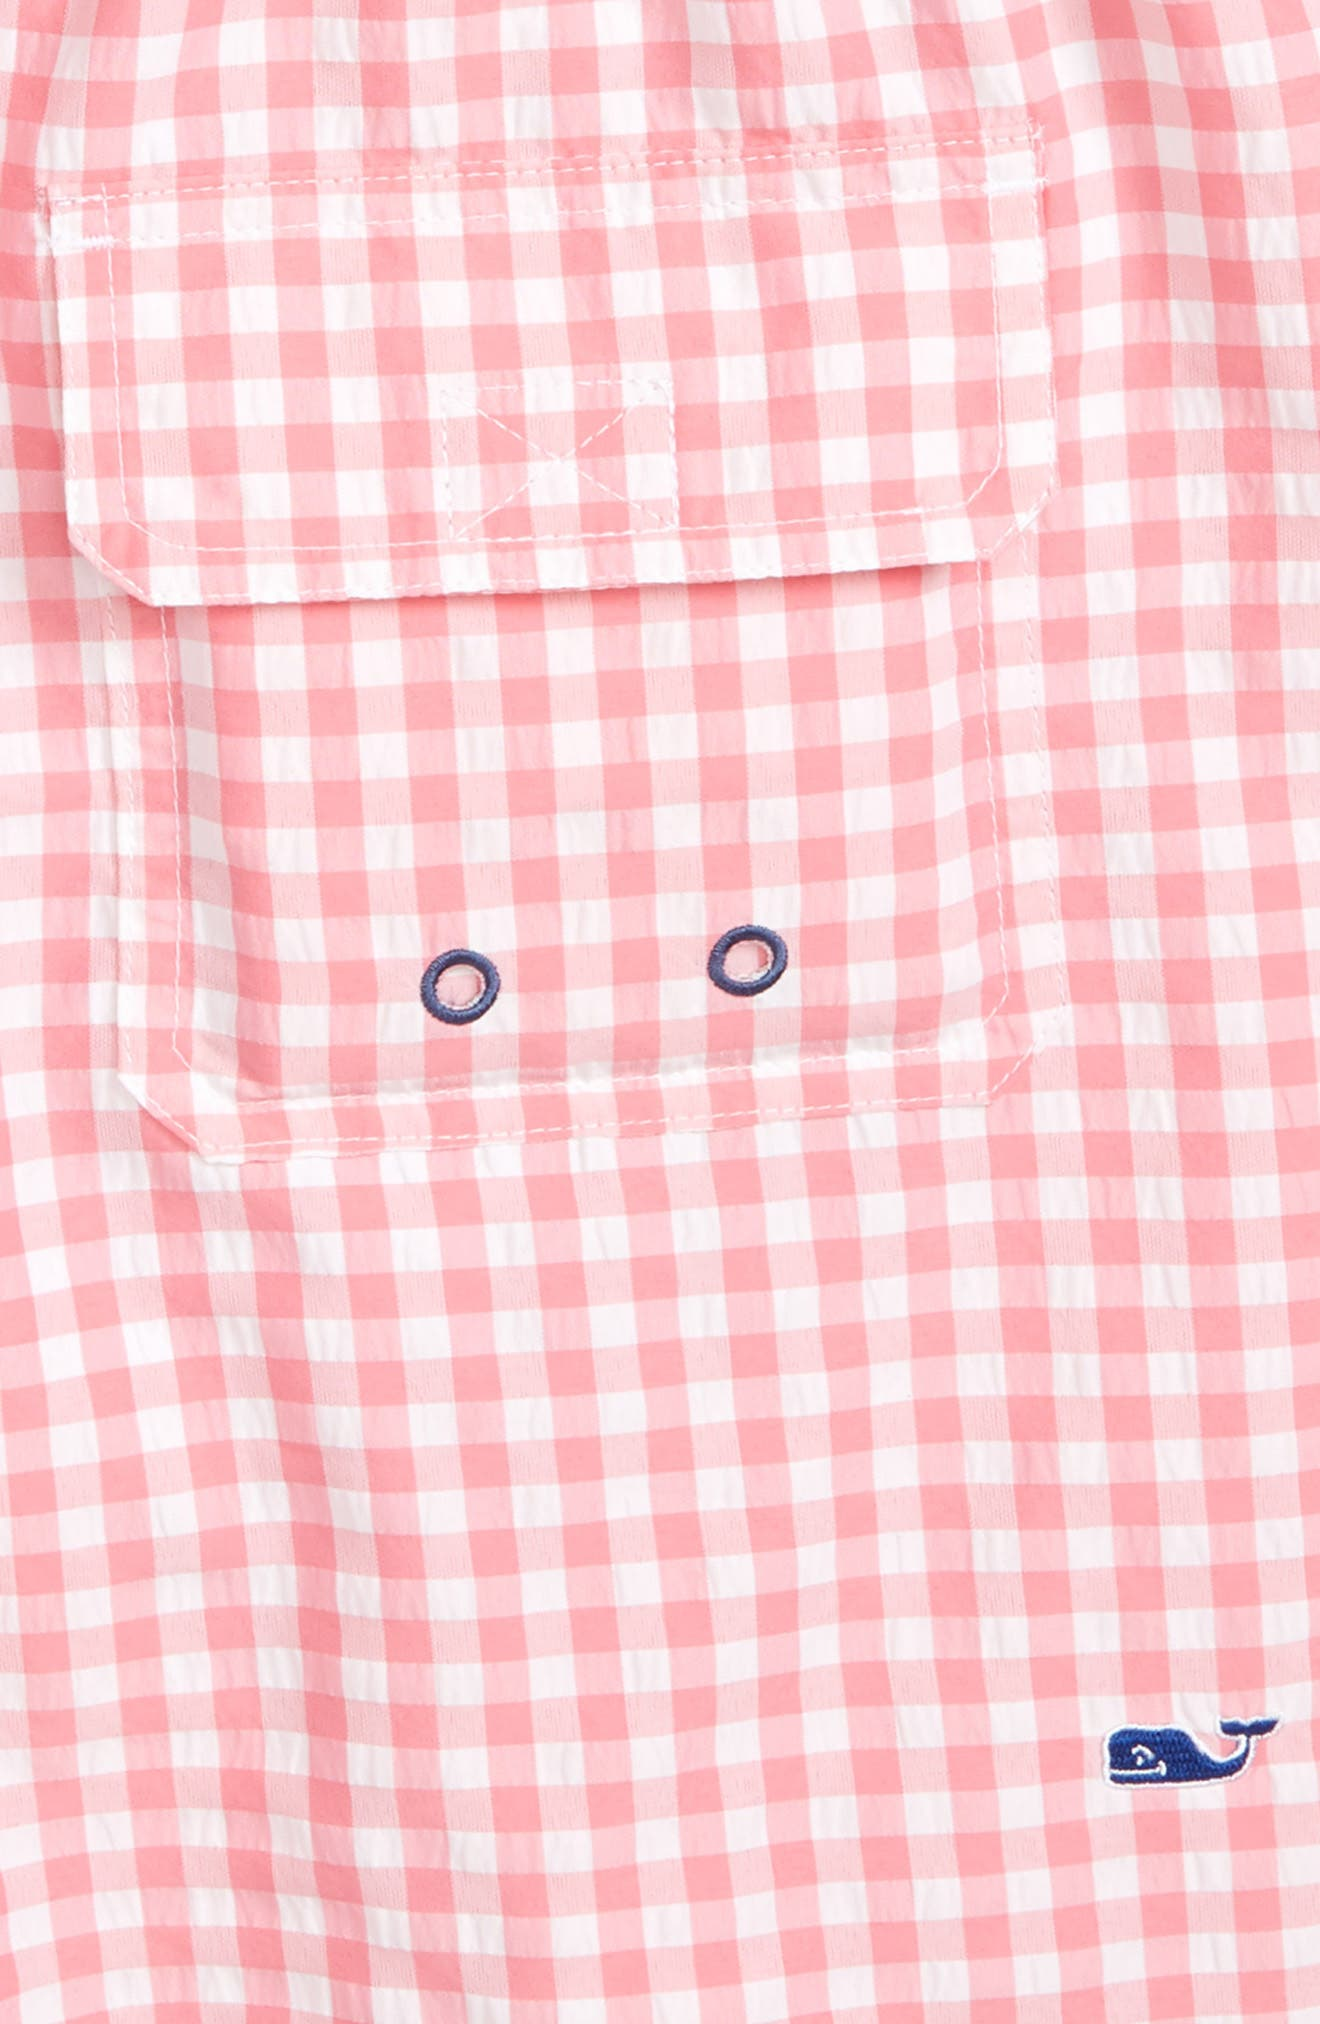 Embroidered Micro Gingham Check Swim Trunks,                             Alternate thumbnail 3, color,                             Bahama Breeze